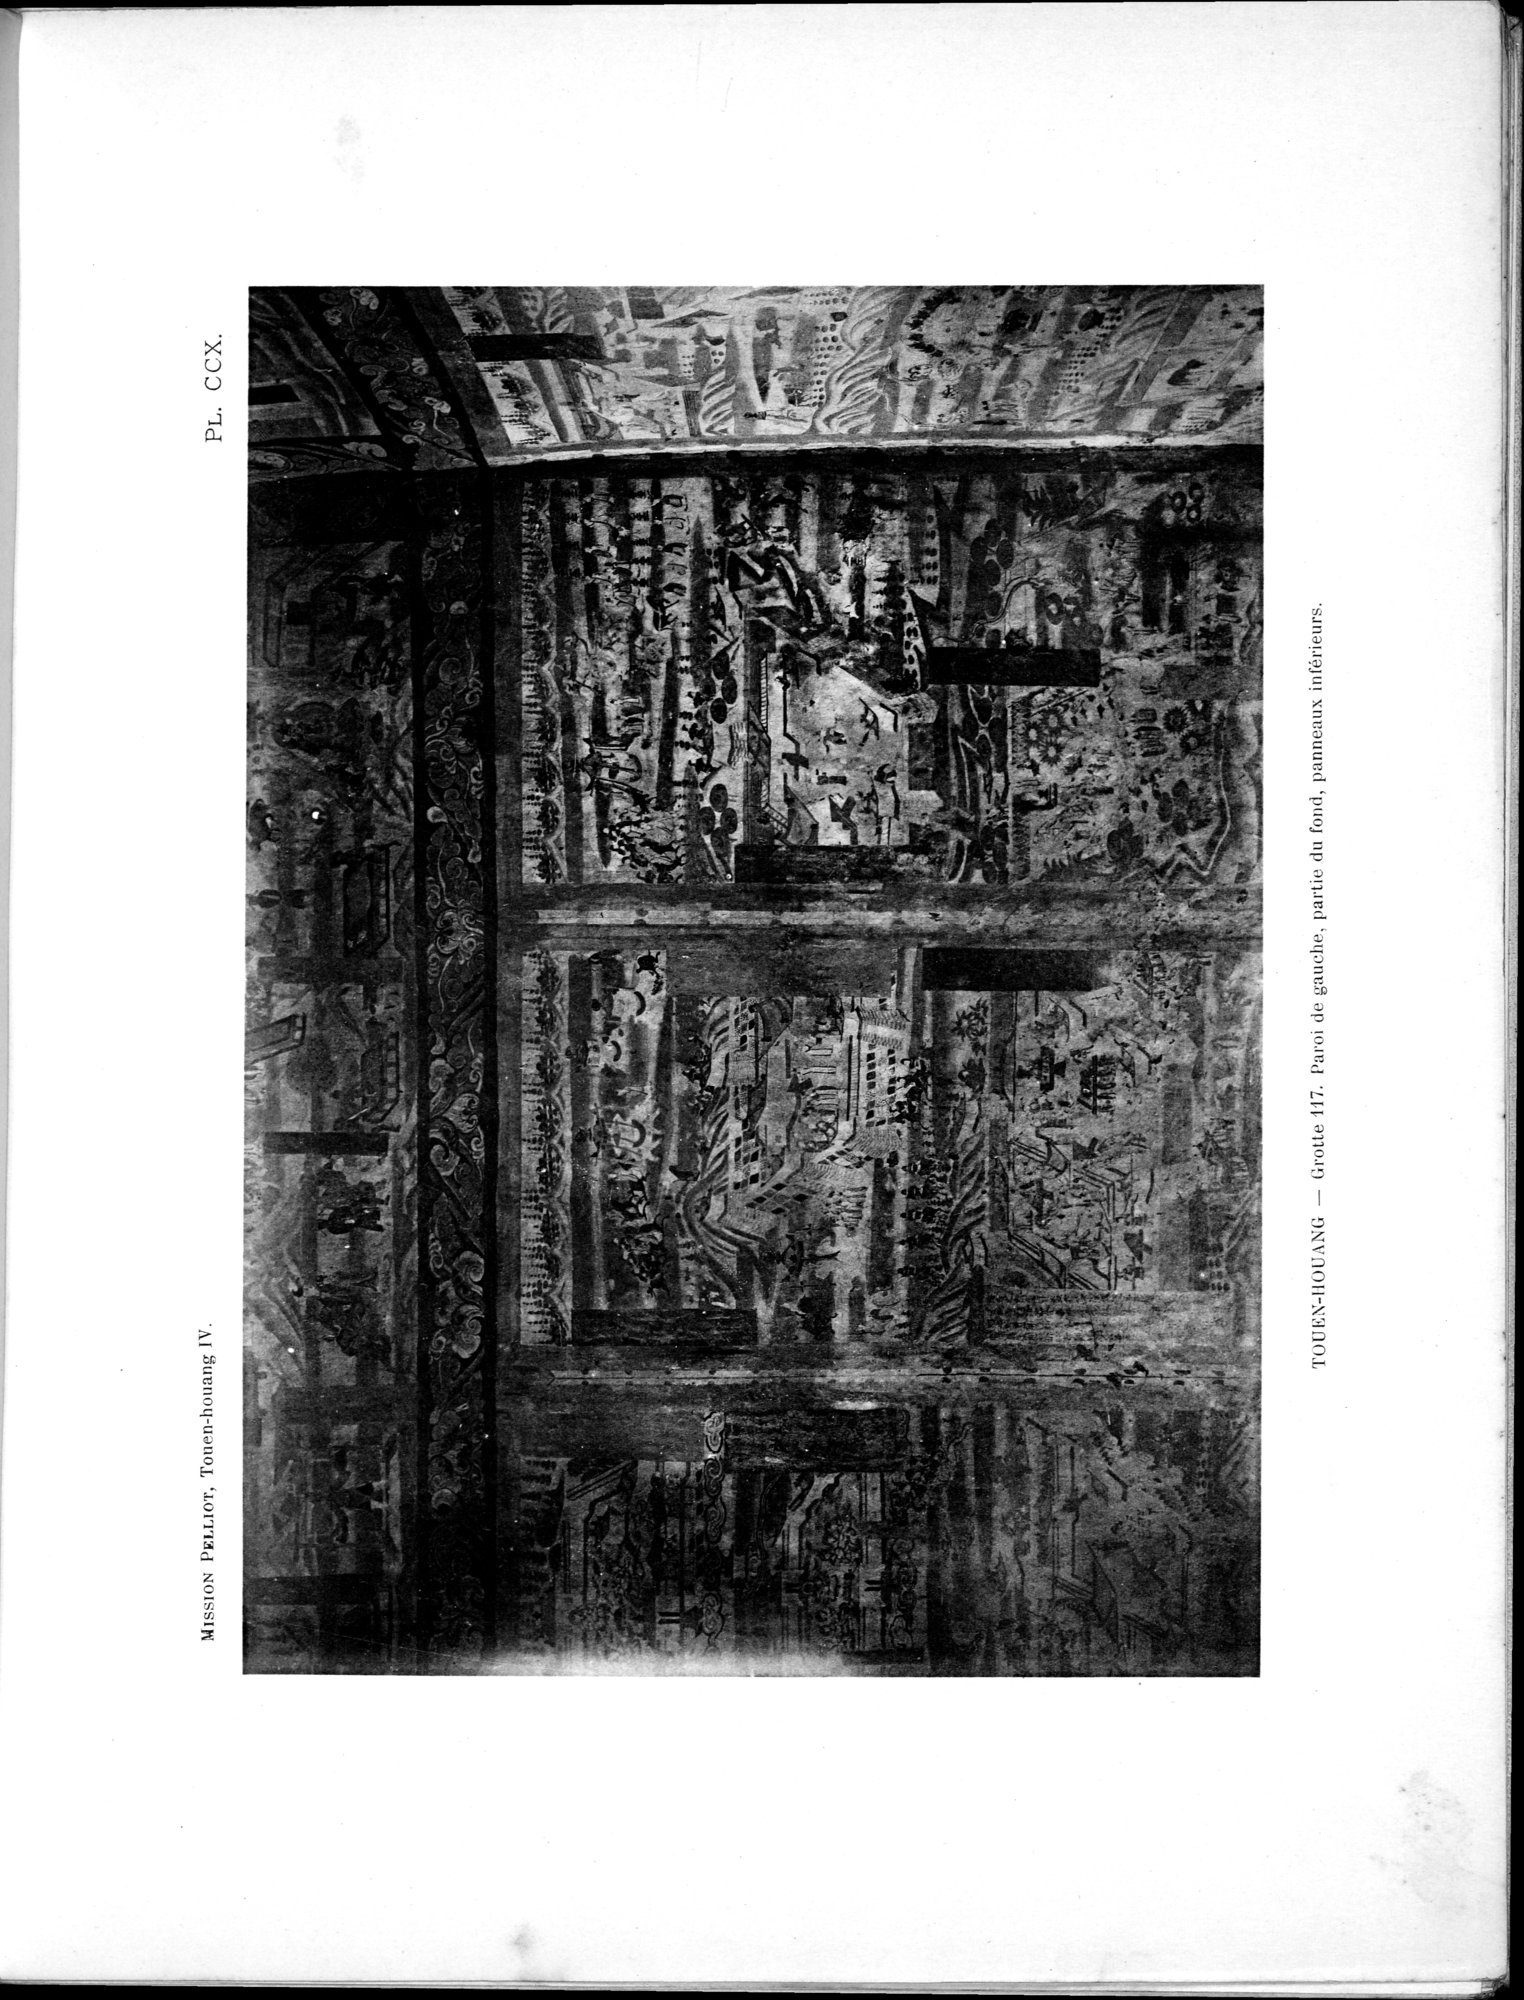 Les grottes de Touen-Houang : vol.4 / Page 45 (Grayscale High Resolution Image)